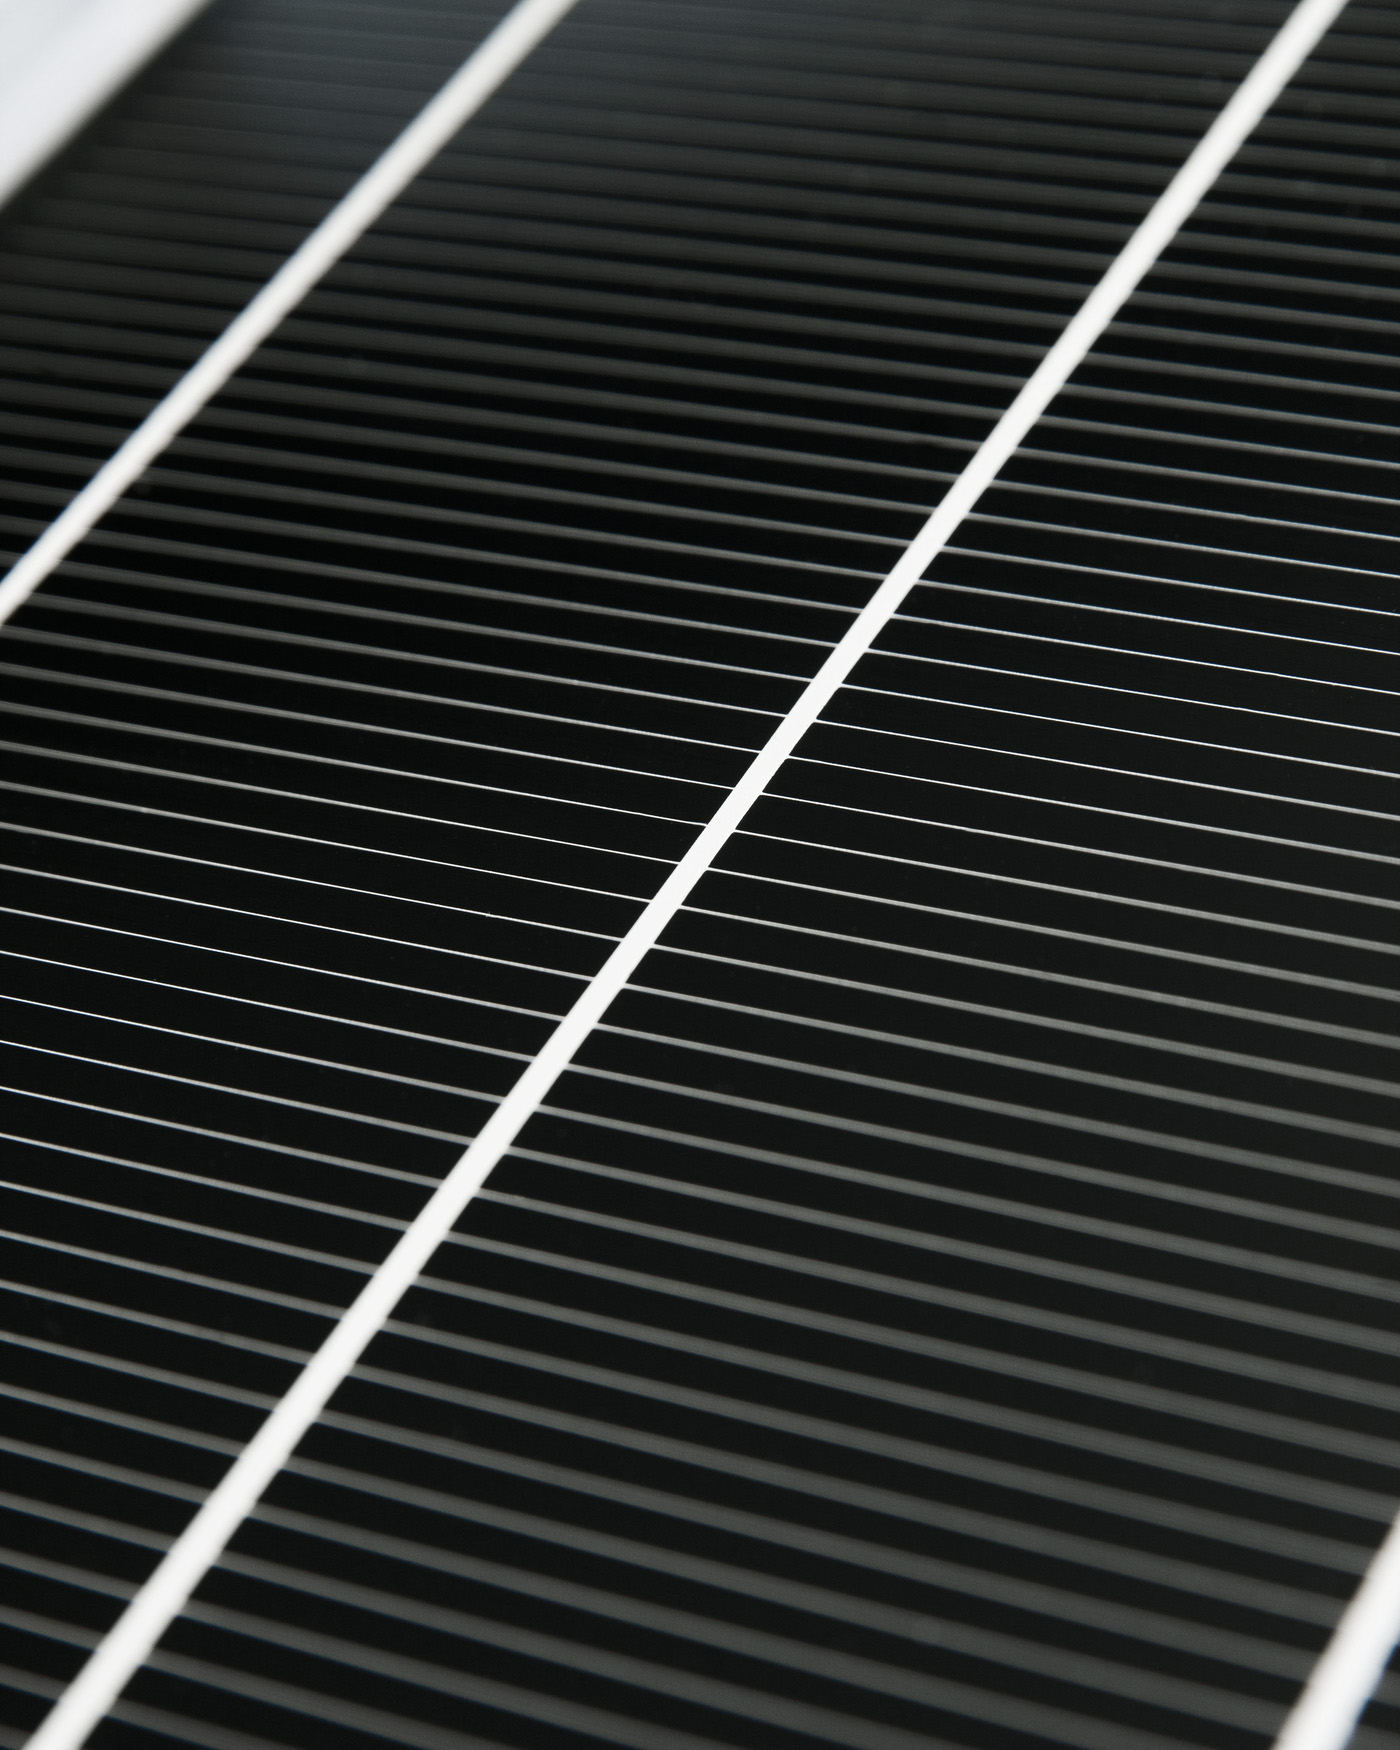 Oxford PV's thin-film perovskite solar cell at their base in Oxford, Oxon, 25 October 2017. Photo by Adam Gasson / adamgasson.com / Innovate UK